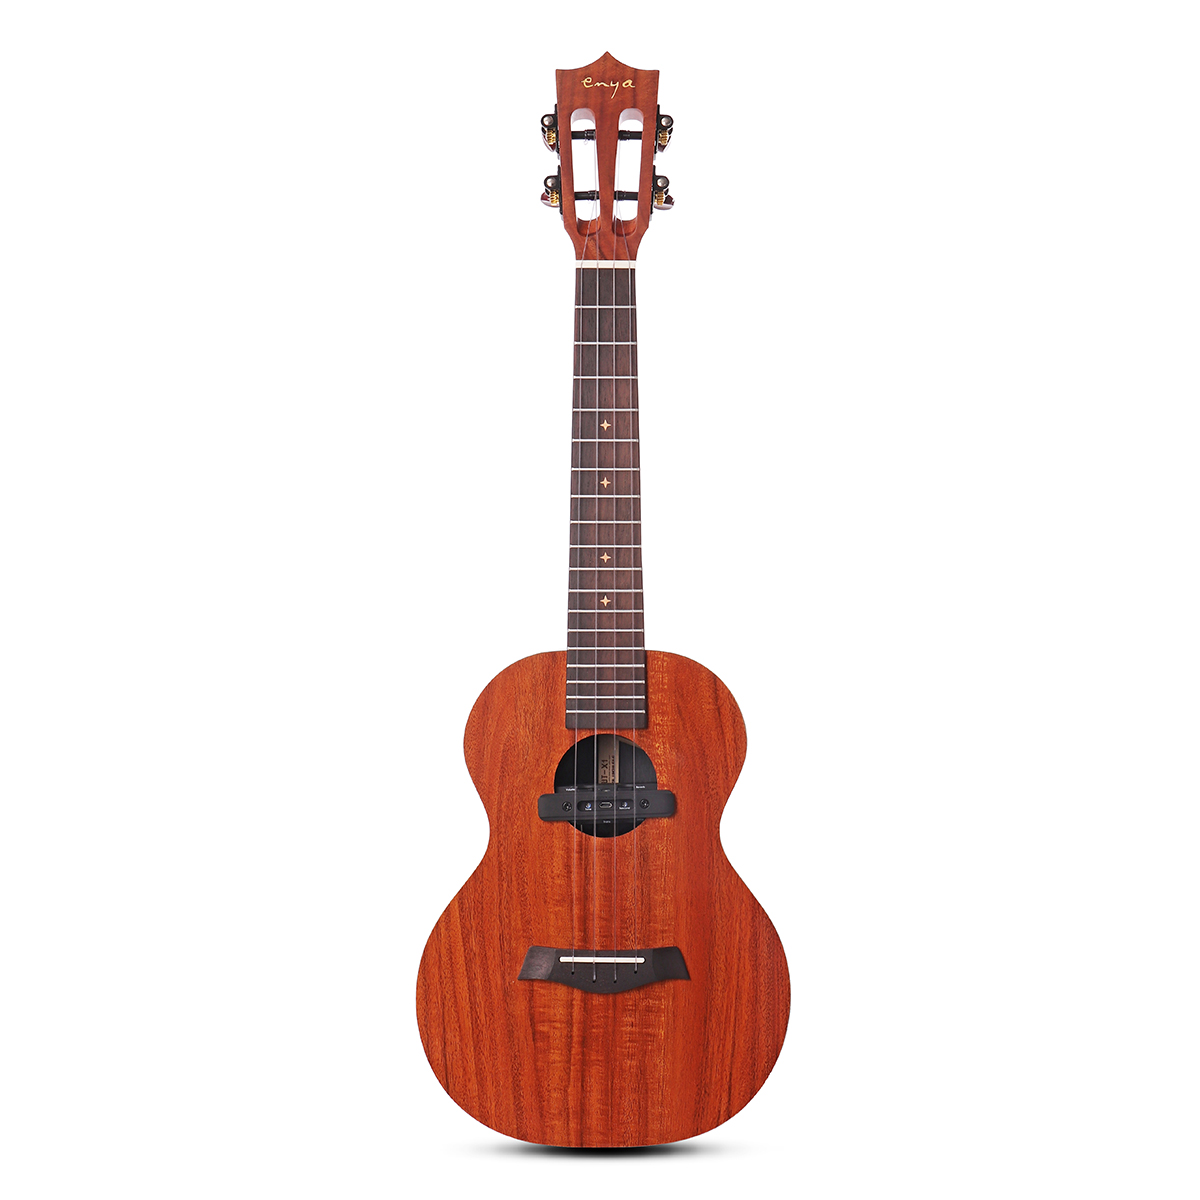 Enya EUT-X1 26 Inch Full Board HPL KOA Ukulele Classical Headstock With Bag/Tuner/Capo Accessories